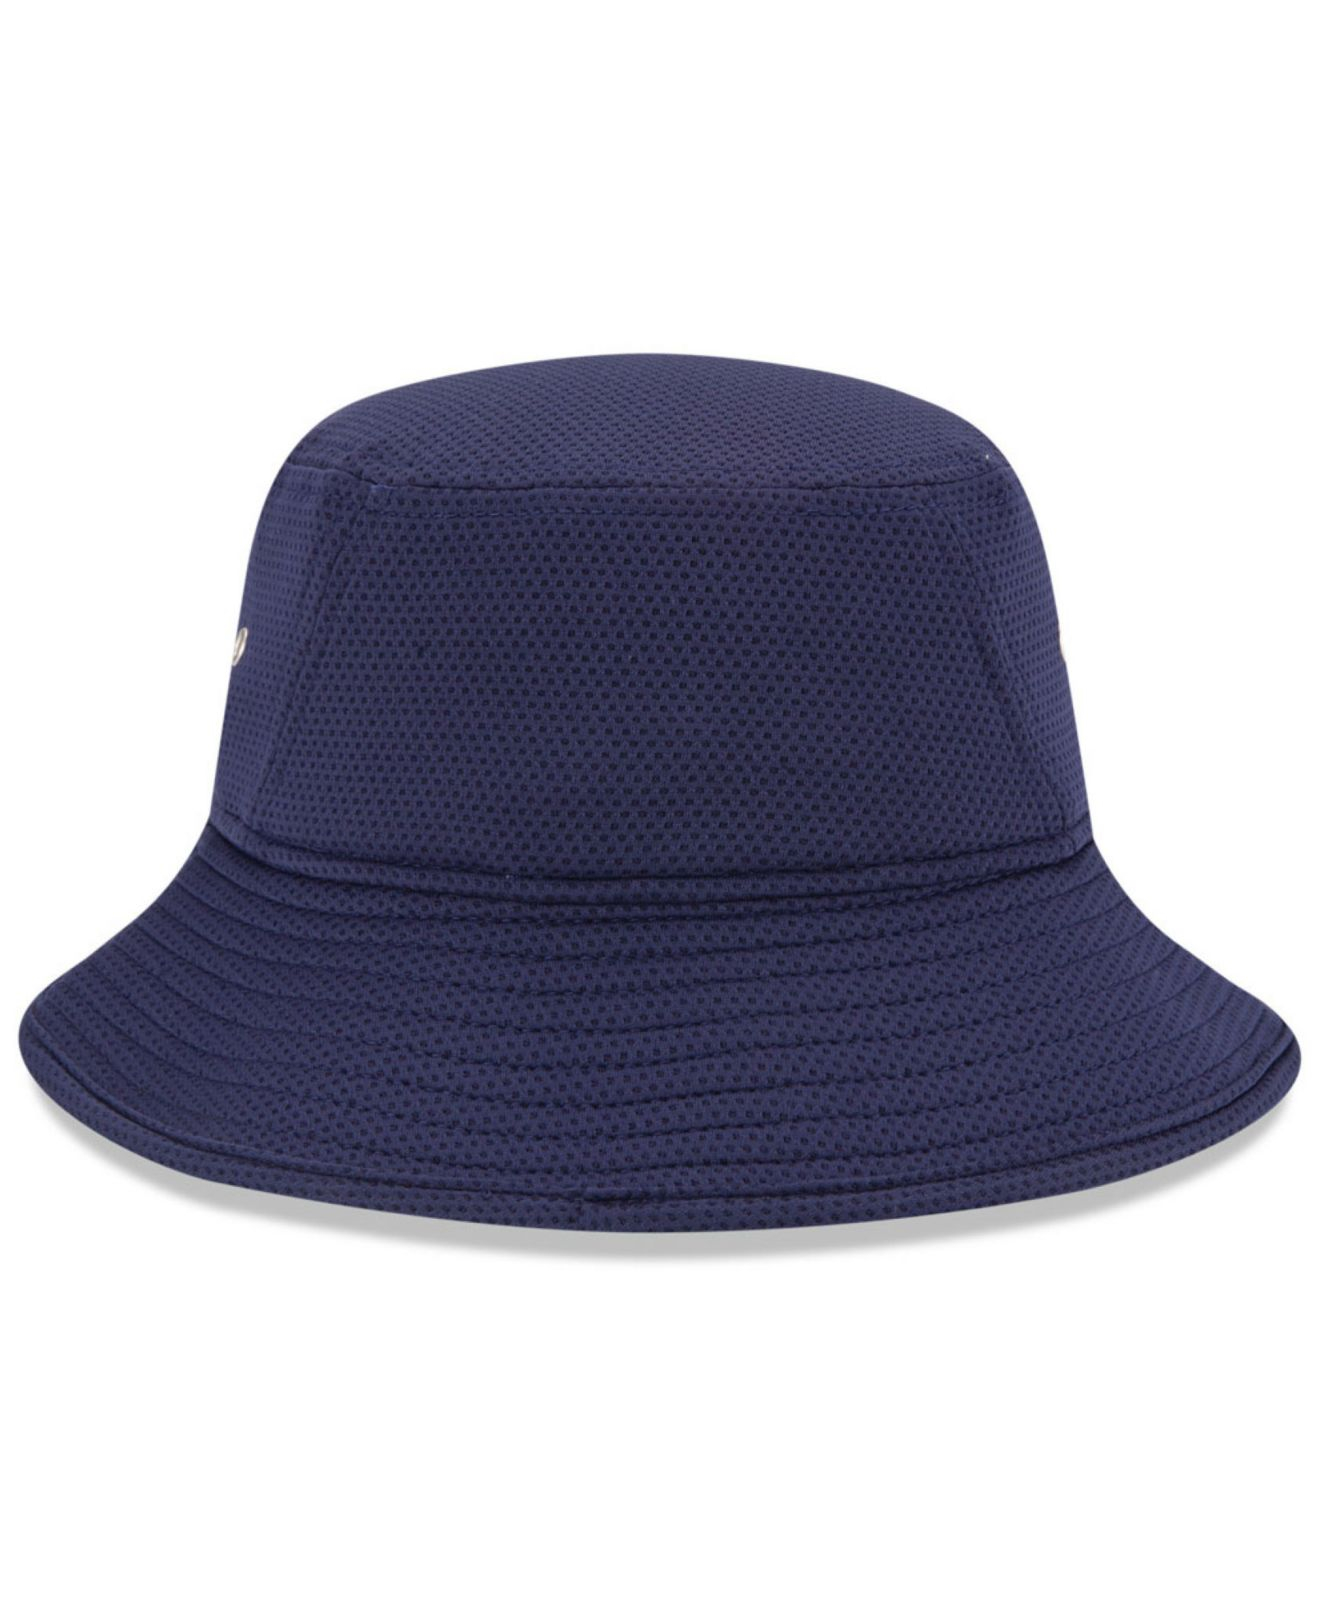 ... france lyst ktz tampa bay rays team redux bucket hat in blue for men  76aa9 f145b f7a15ca6f078